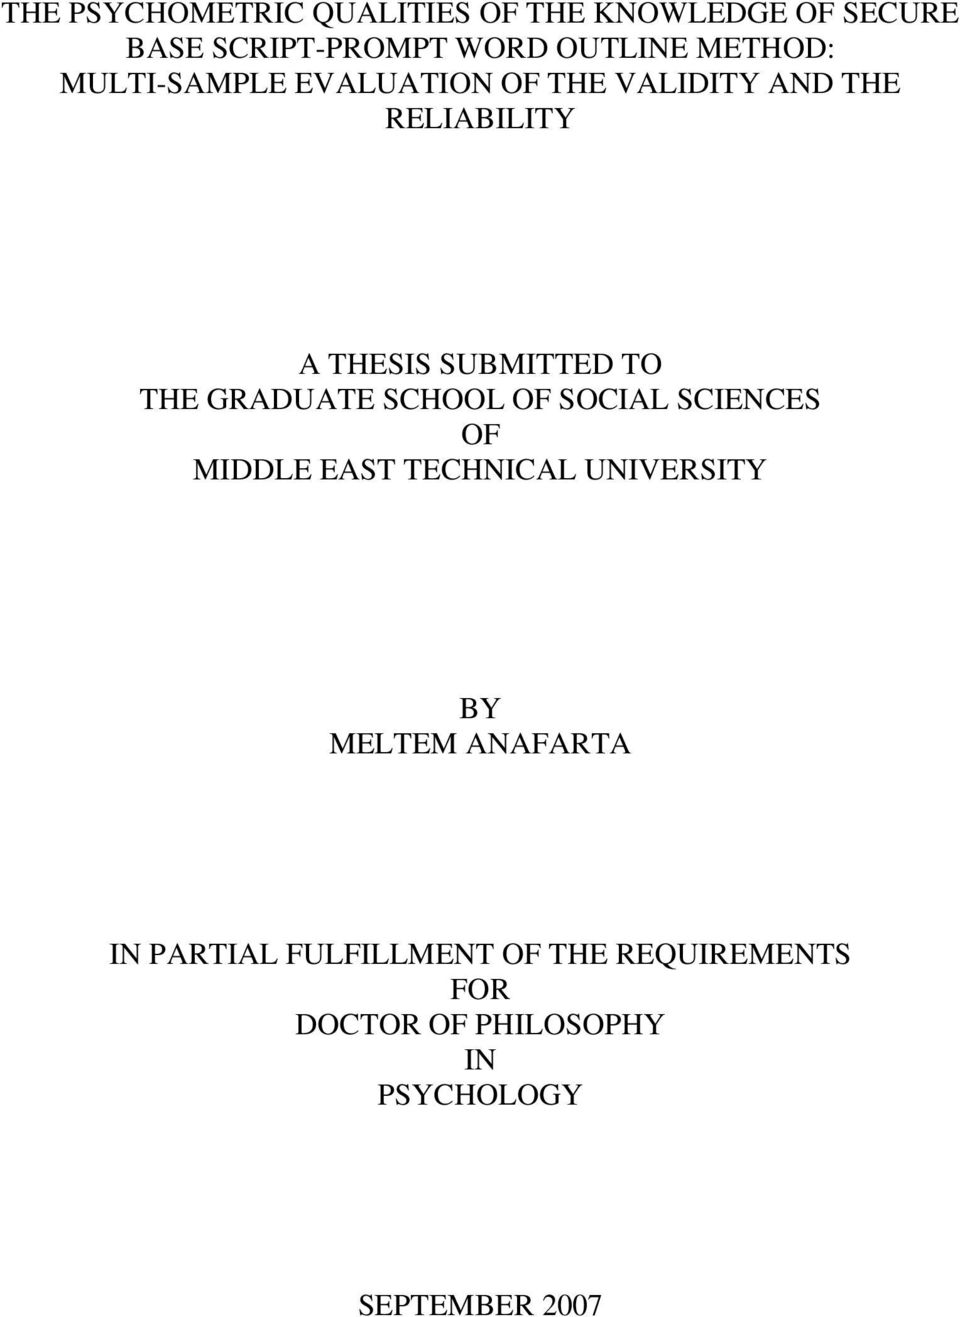 THE GRADUATE SCHOOL OF SOCIAL SCIENCES OF MIDDLE EAST TECHNICAL UNIVERSITY BY MELTEM